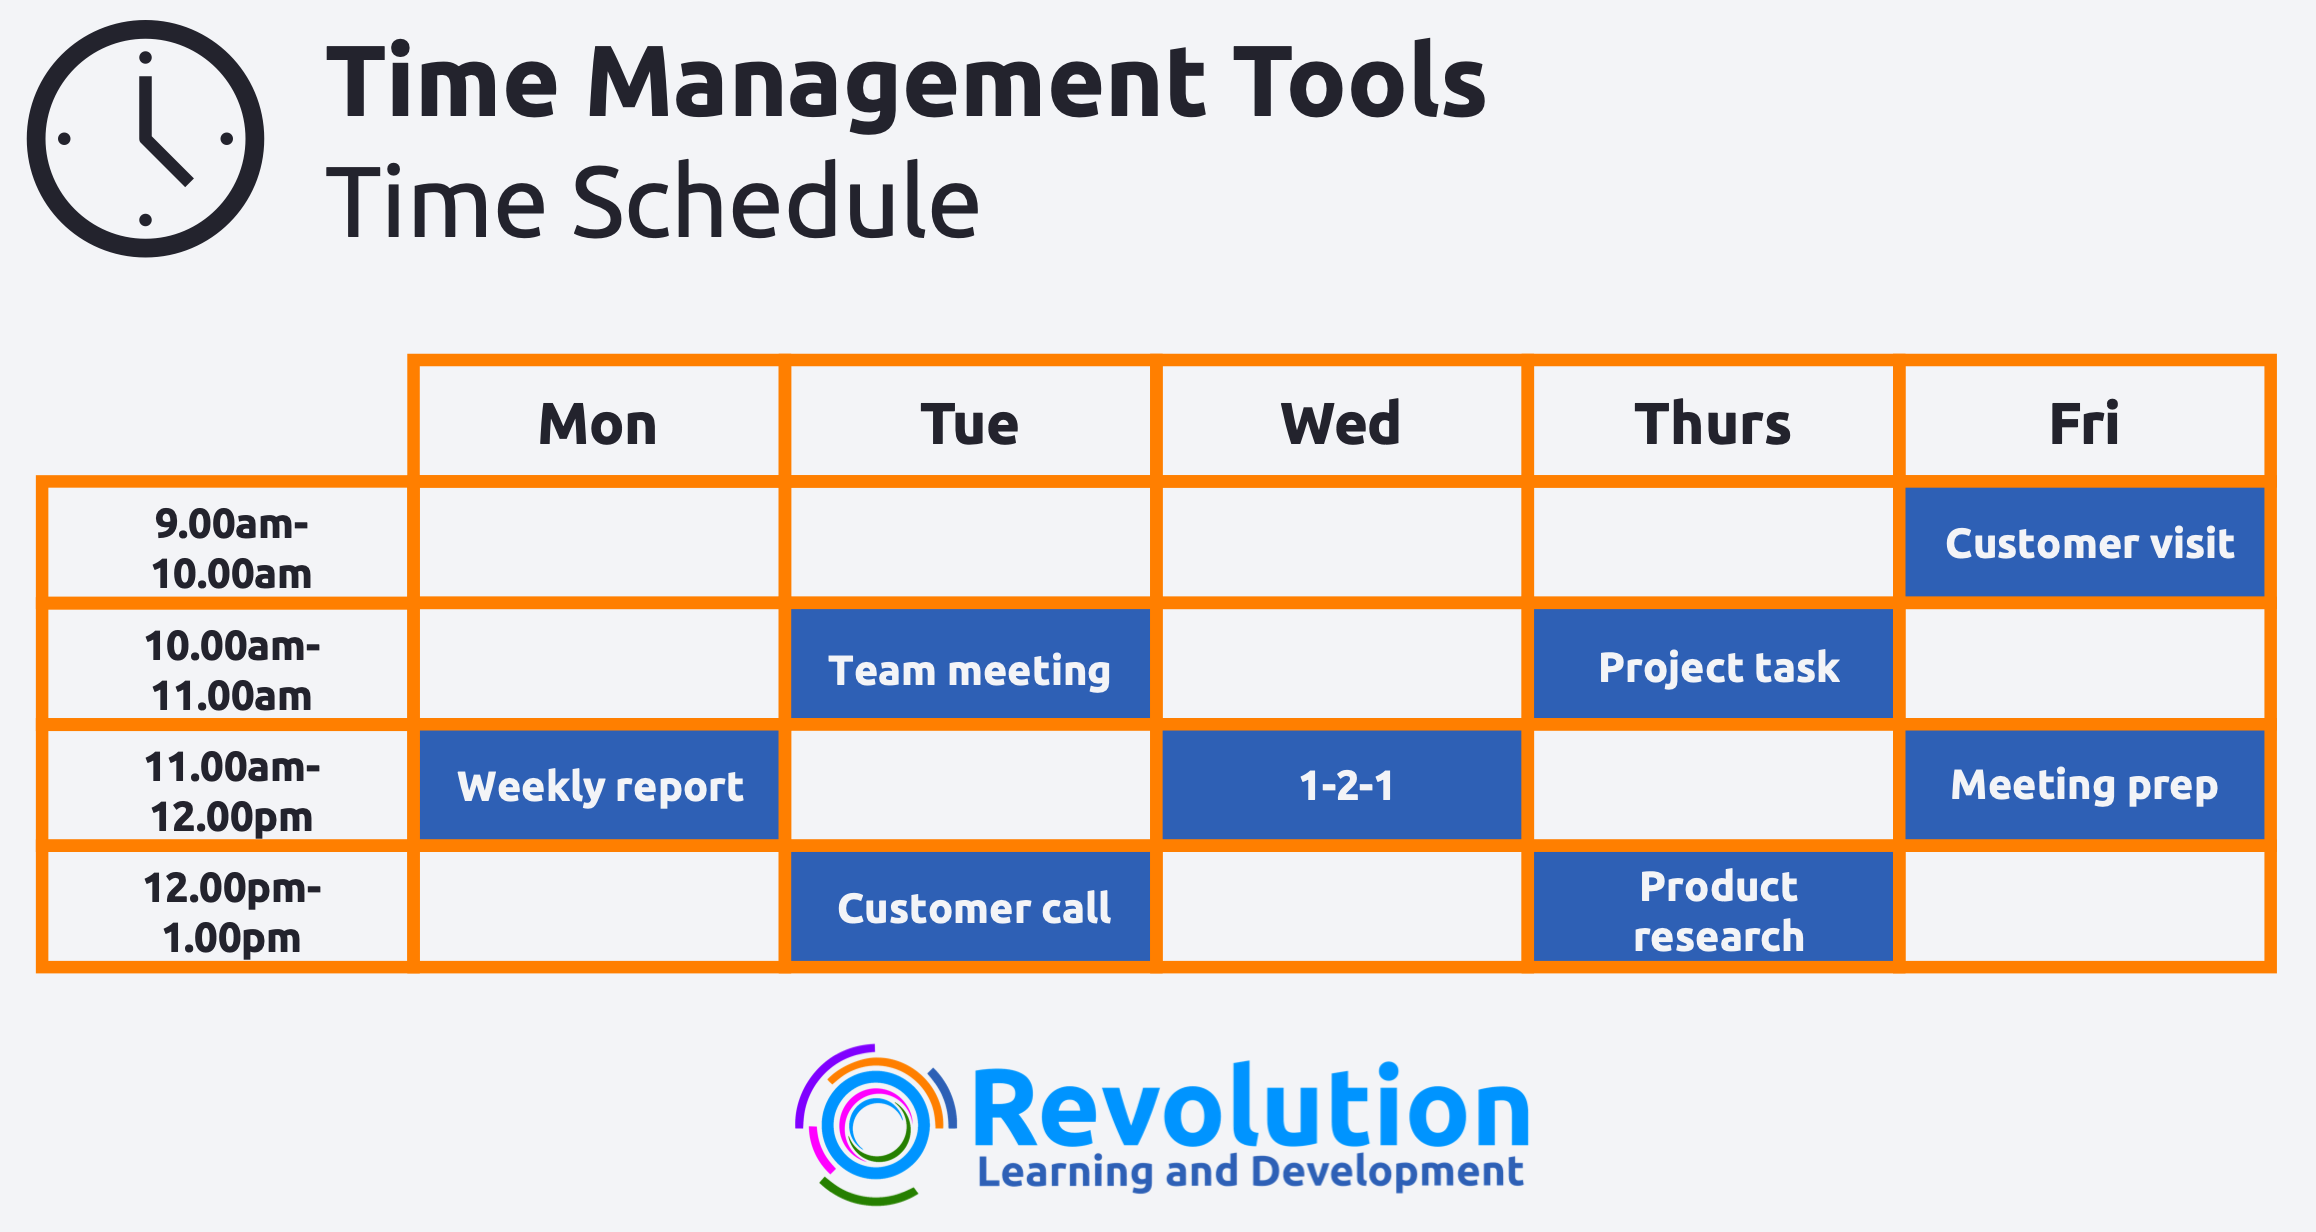 time management tools - time schedule